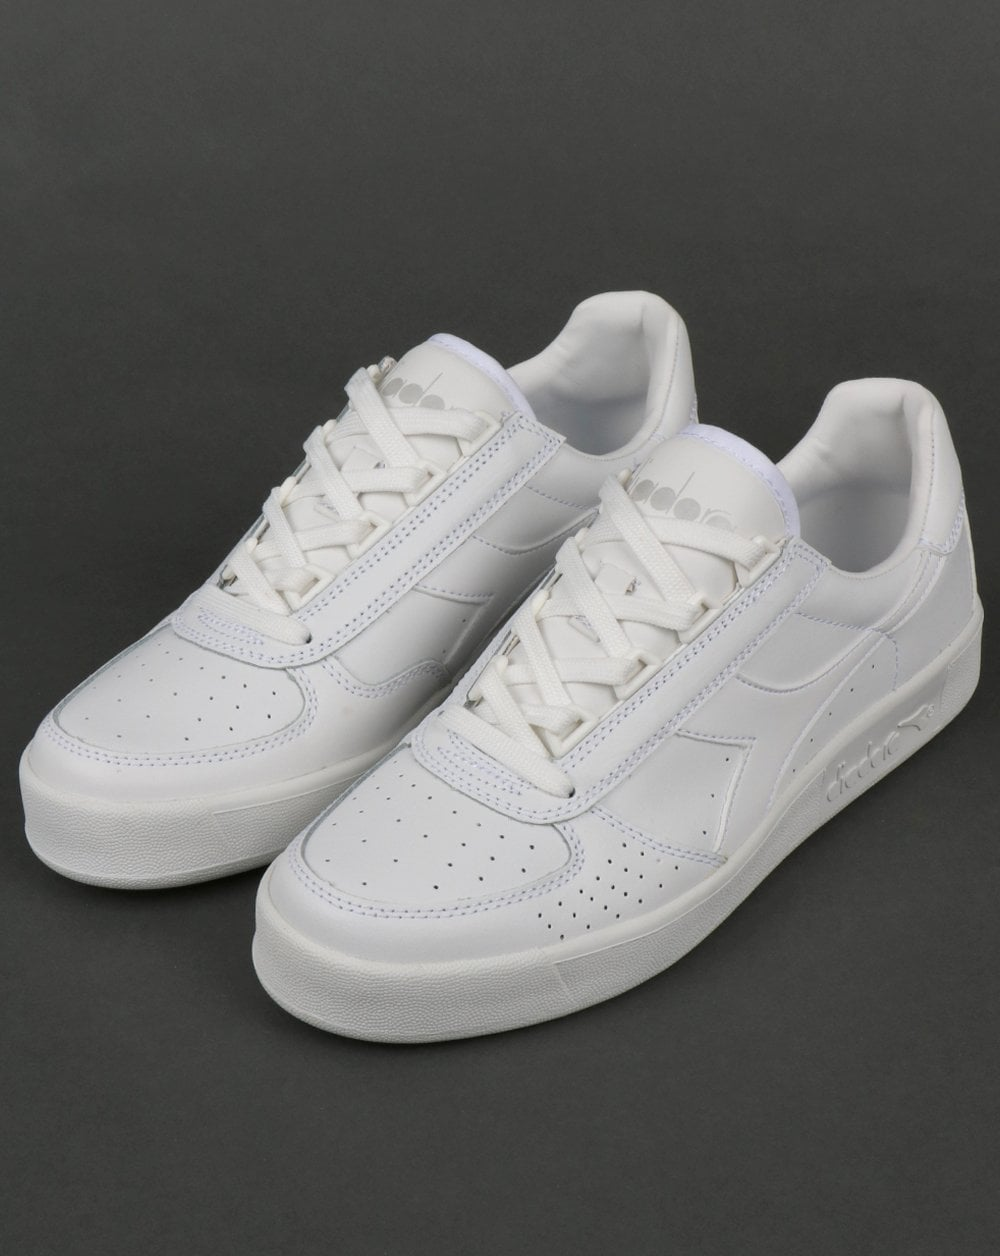 Diadora Borg Elite White